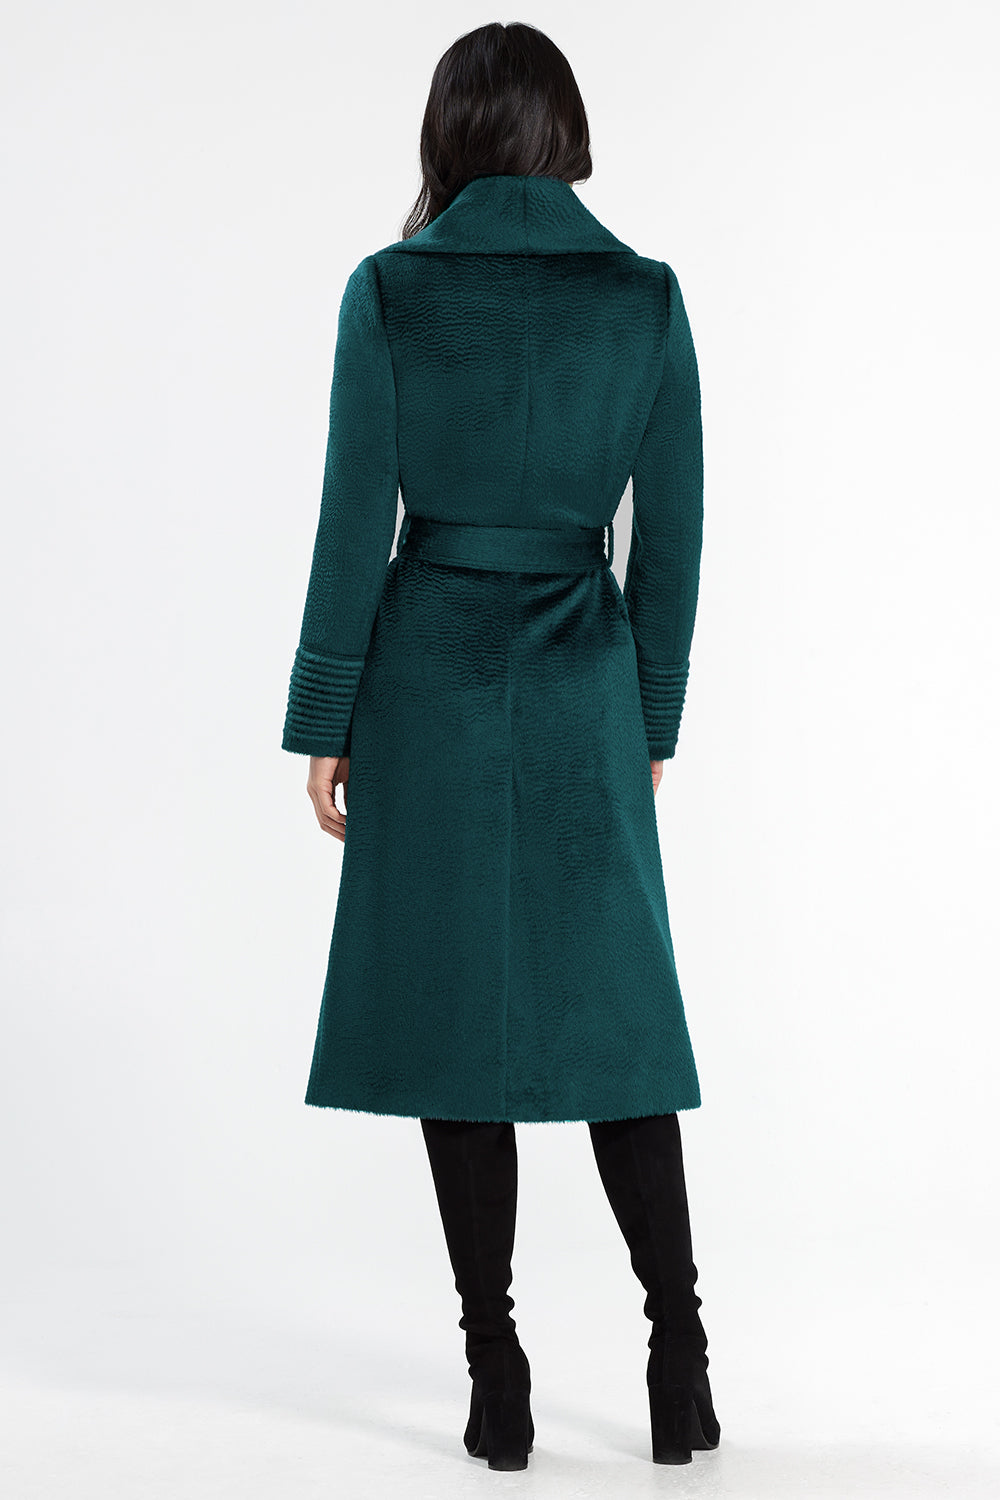 Sentaler Suri Alpaca Long Shawl Collar Wrap Coat featured in Suri Alpaca and available in Emerald Green. Seen from back.